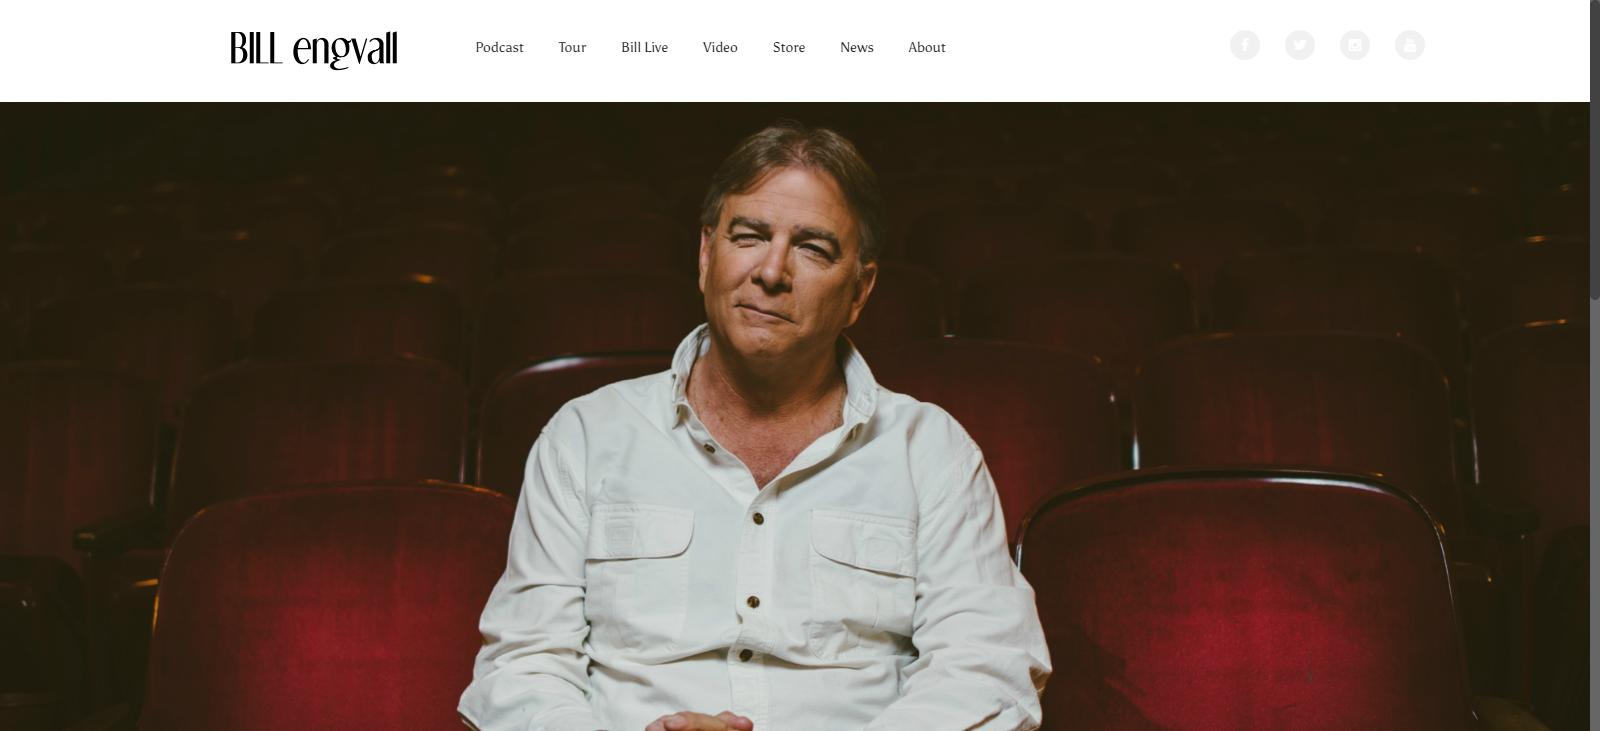 Bill Engvall Website Screenshot